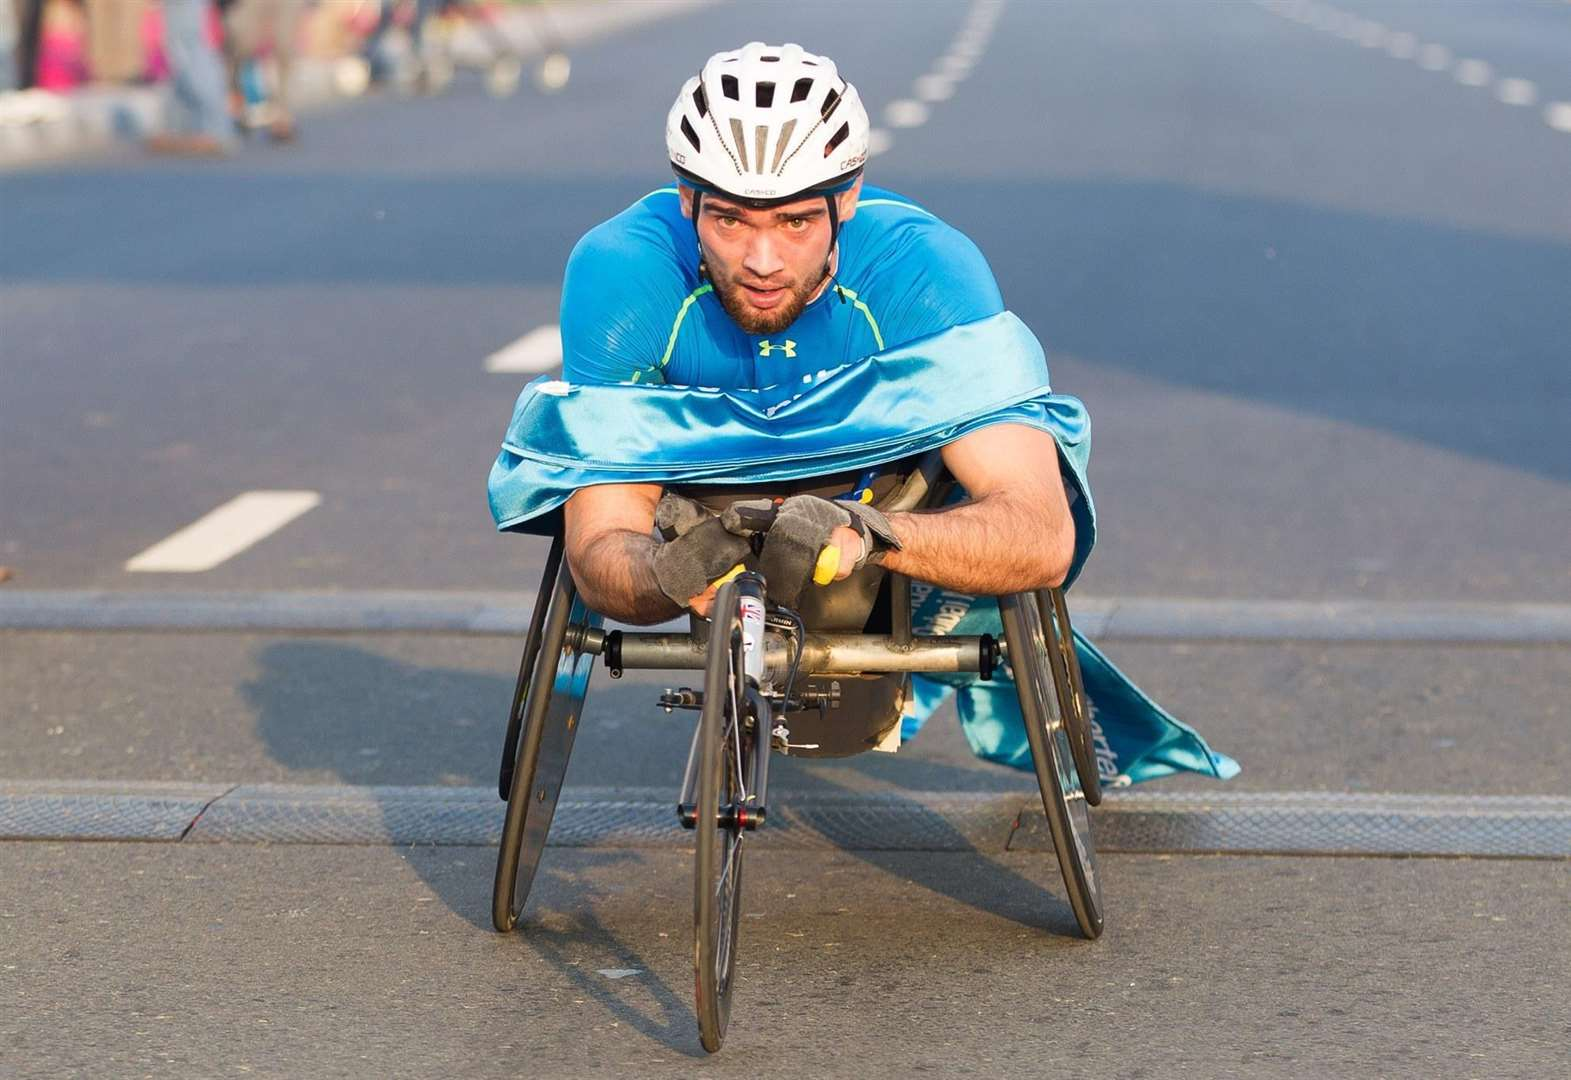 Wheelchair fundraiser for paralympian